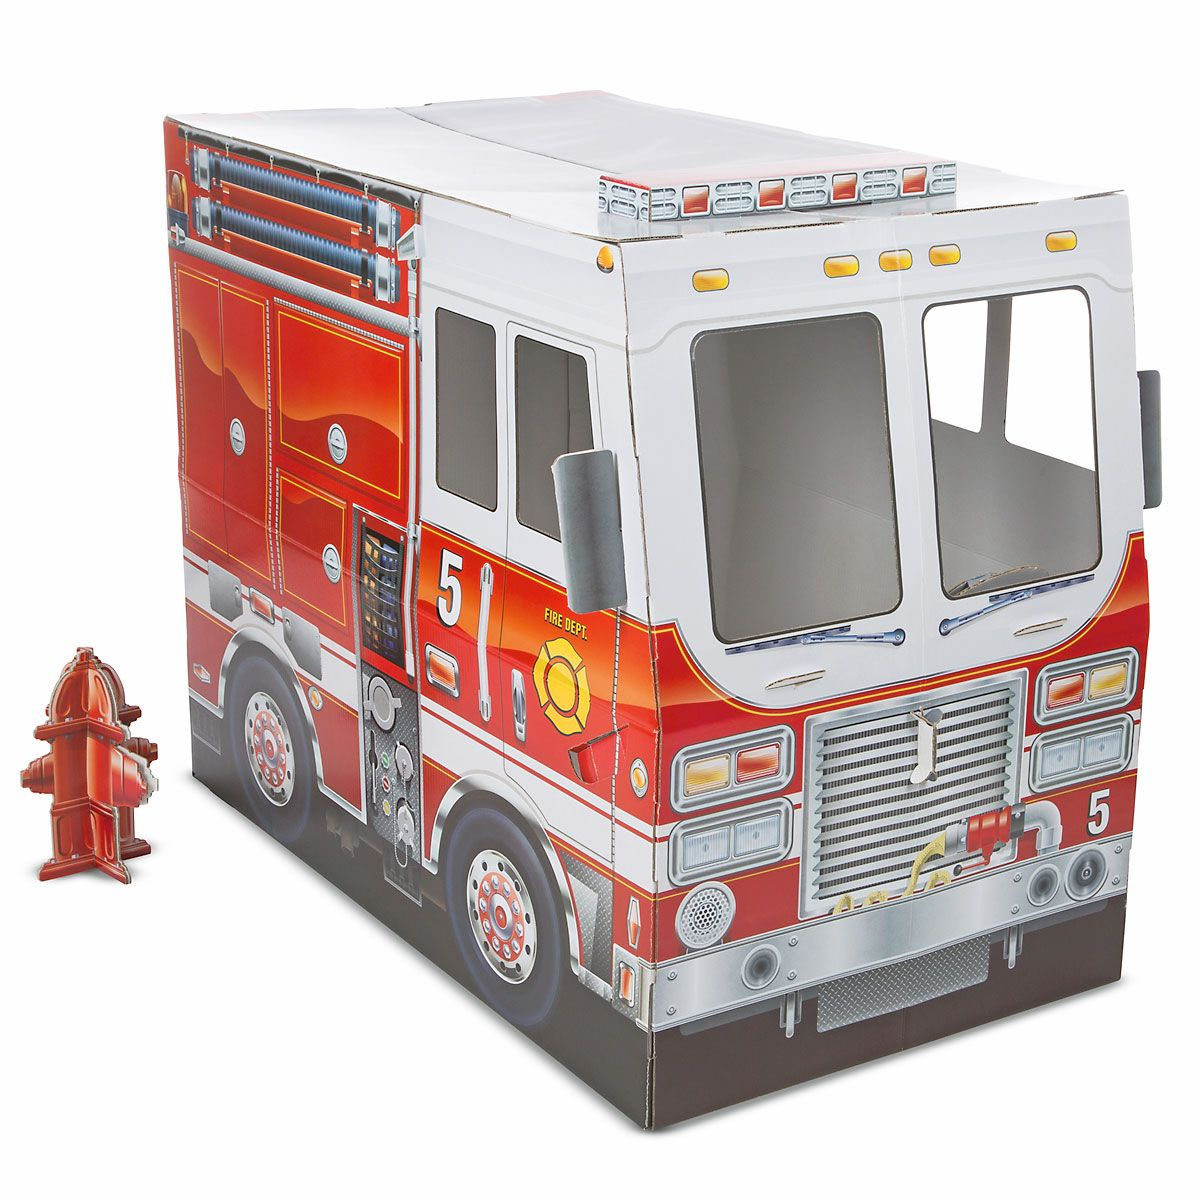 Fire Truck Indoor Playhouse by Melissa & Doug®